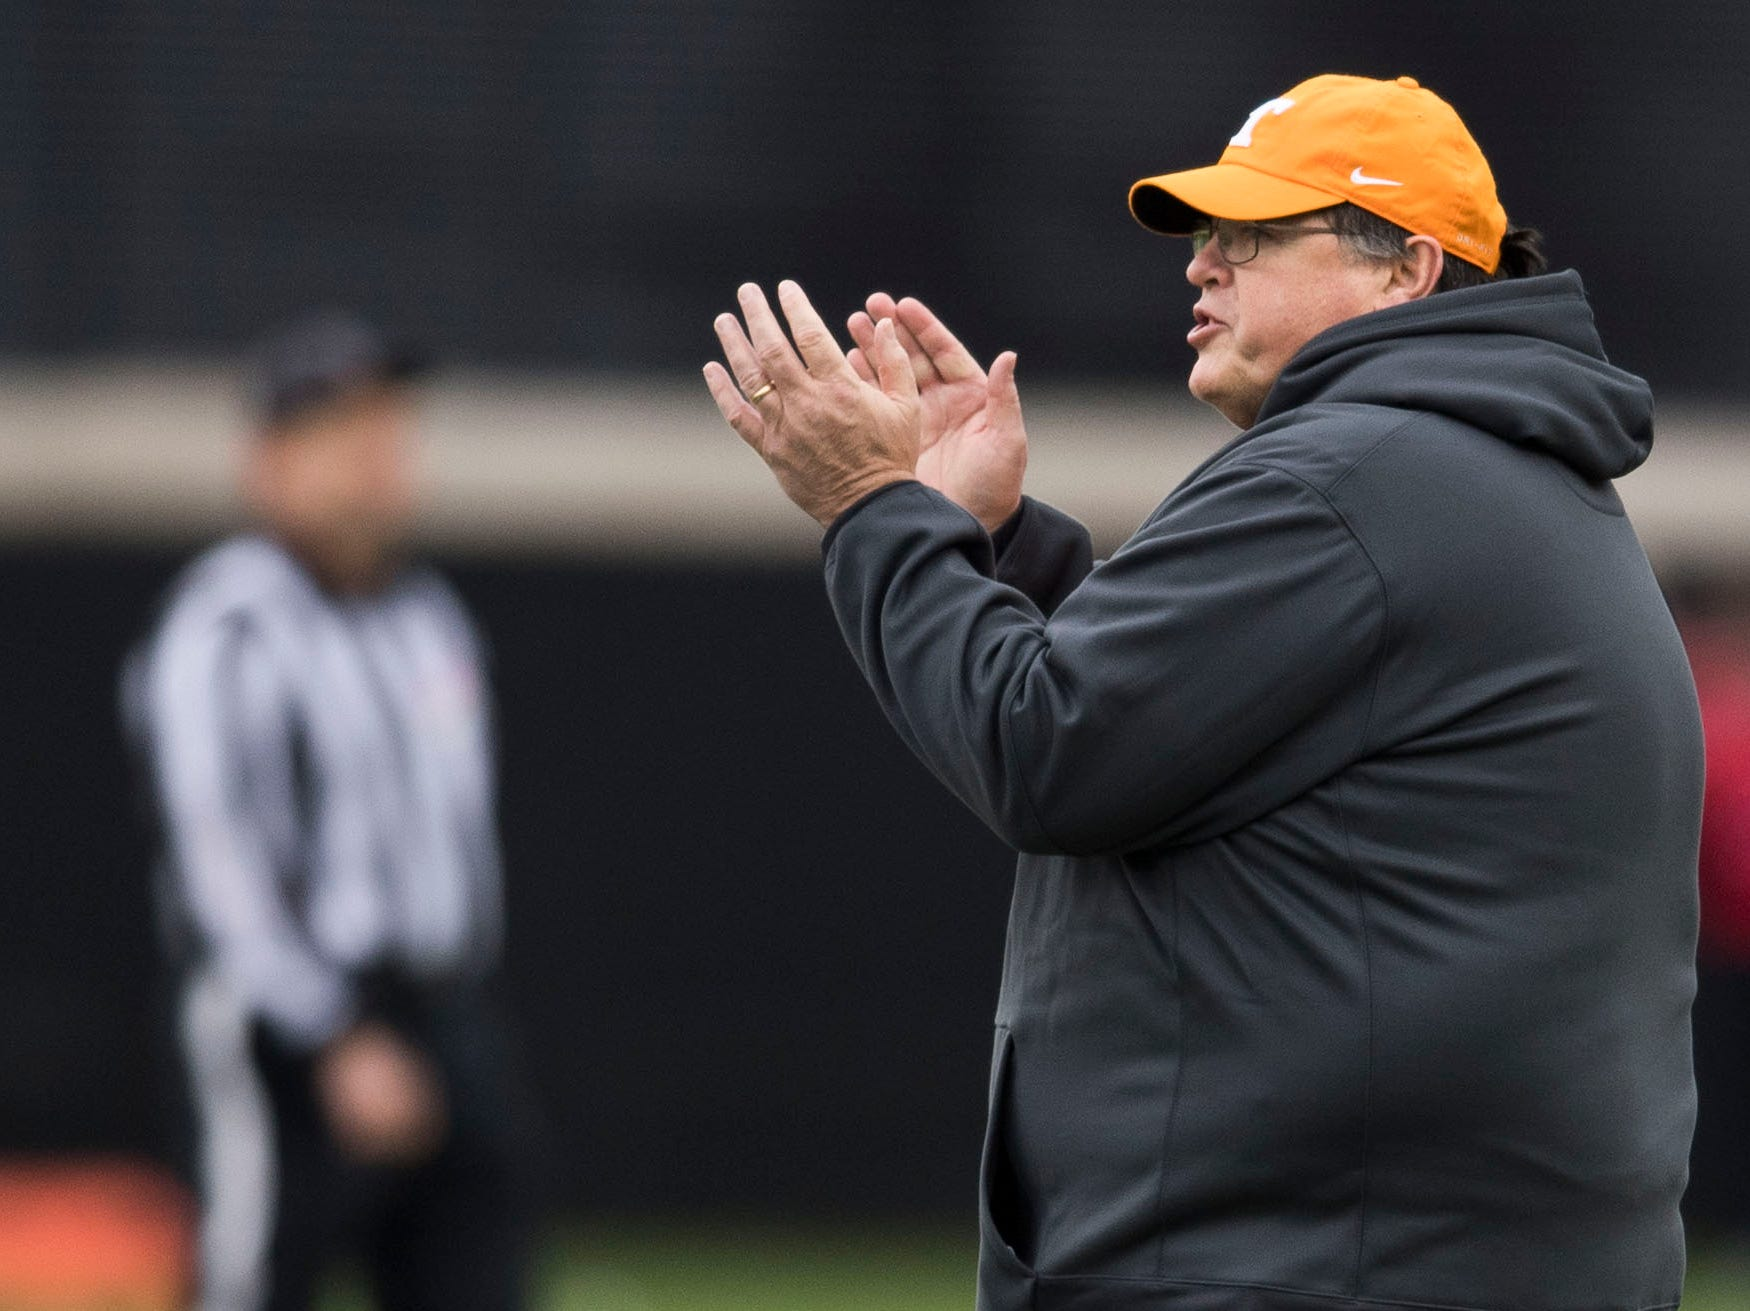 Tennessee offensive coordinator Jim Chaney claps on the field during Tennessee football's first practice of the spring season at University of Tennessee Thursday, March 7, 2019.